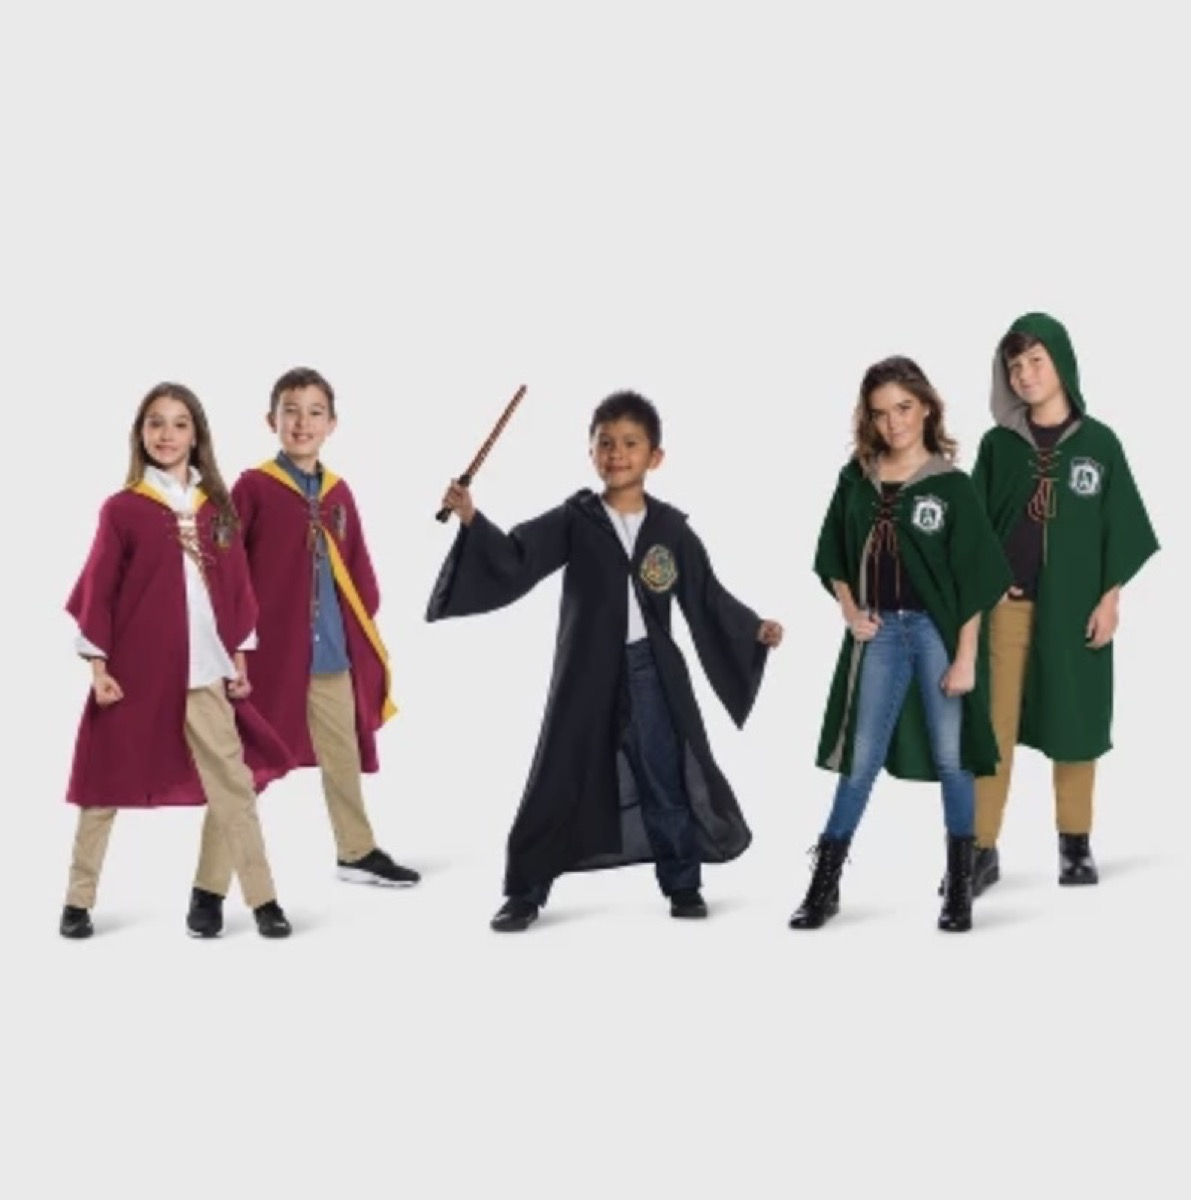 family dressed as harry potter characters, family halloween costumes